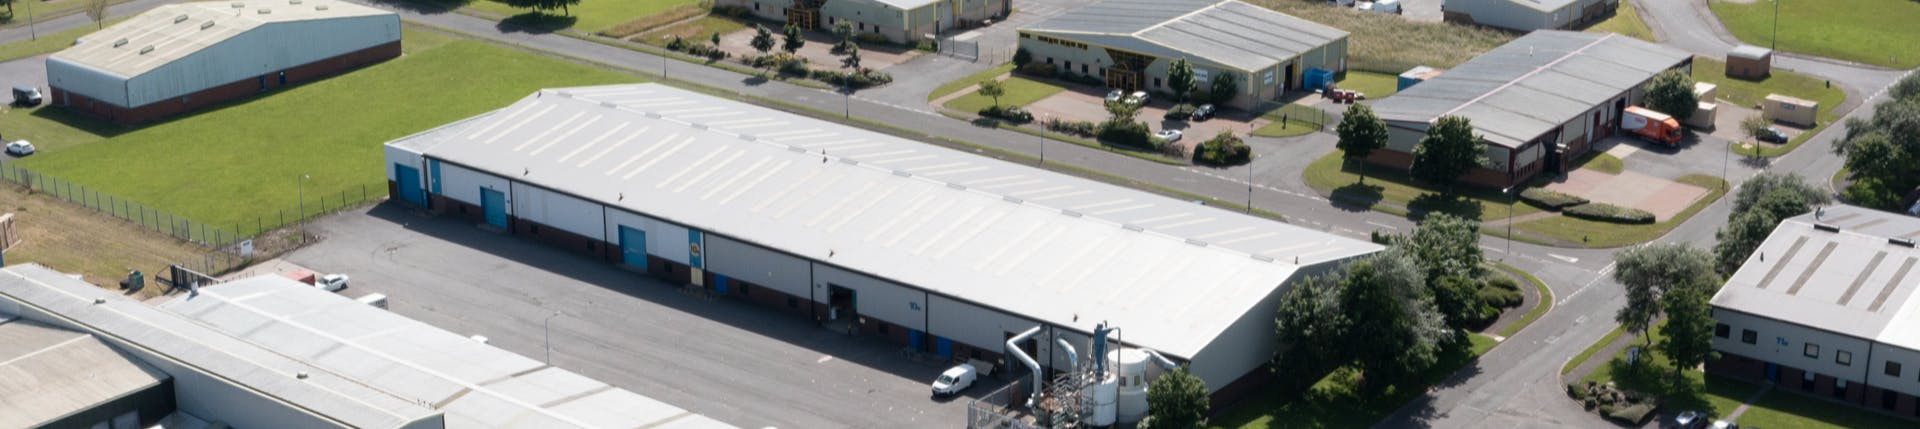 Aerial view of a business park in Hartlepool showing a number of business units